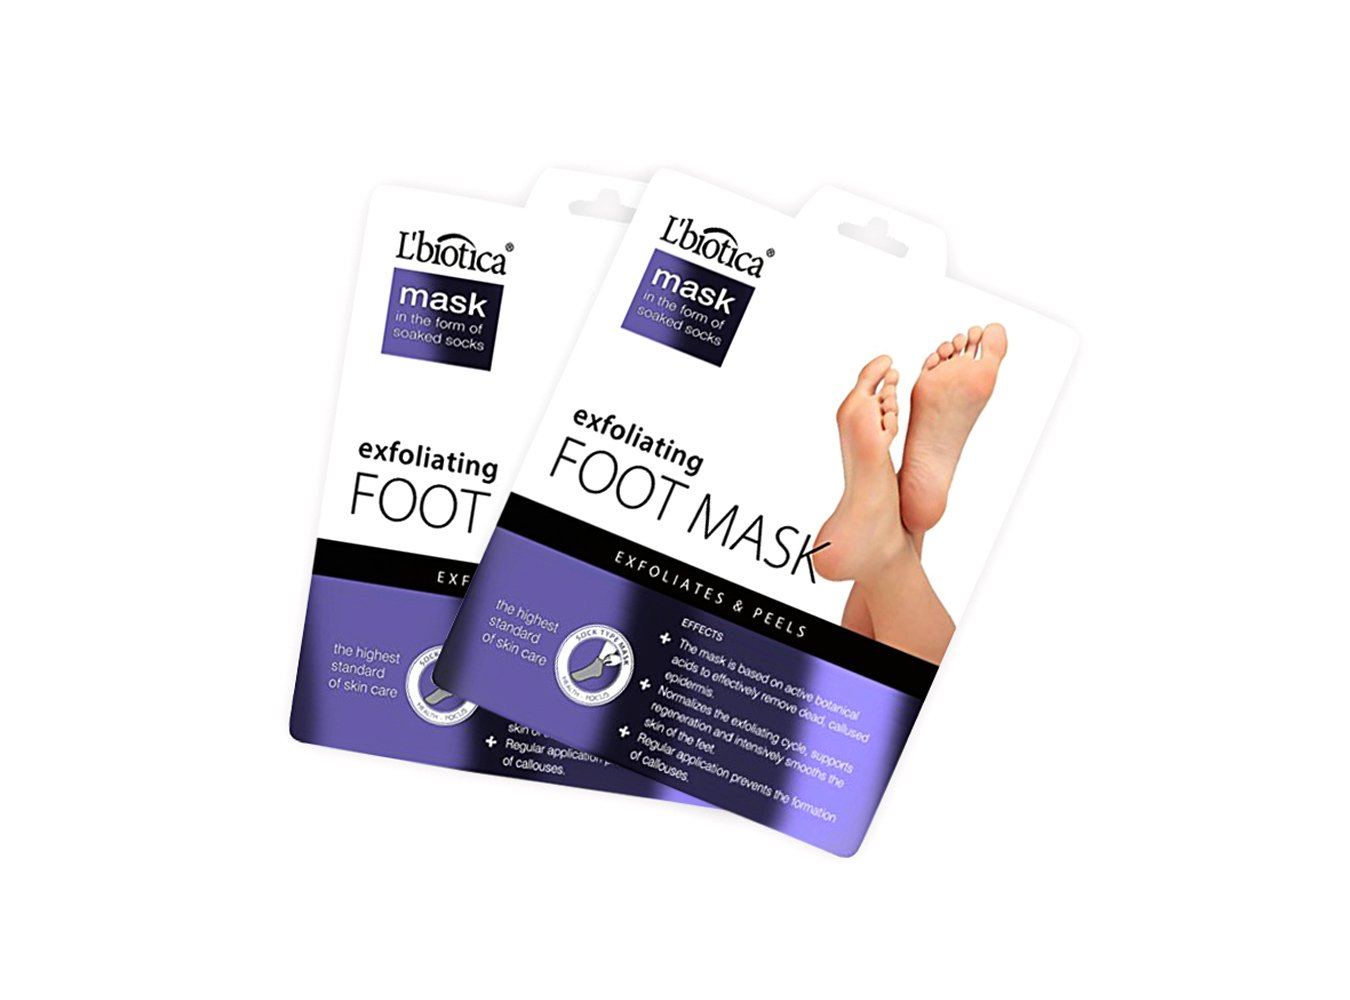 L'Biotica Exfoliating Foot Mask - Peel off Dead Skin, Remove Callus and Corn, Exfoliating Foot Peel Spa Mask For Soft Touch Baby Foot, Just 2 Weeks -2 Pair